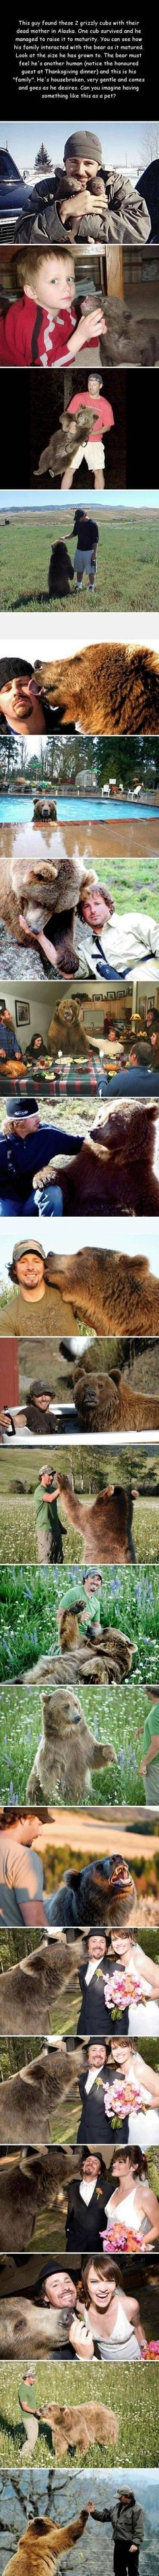 Oh, don't mind me while I pet my motherf*cking bear